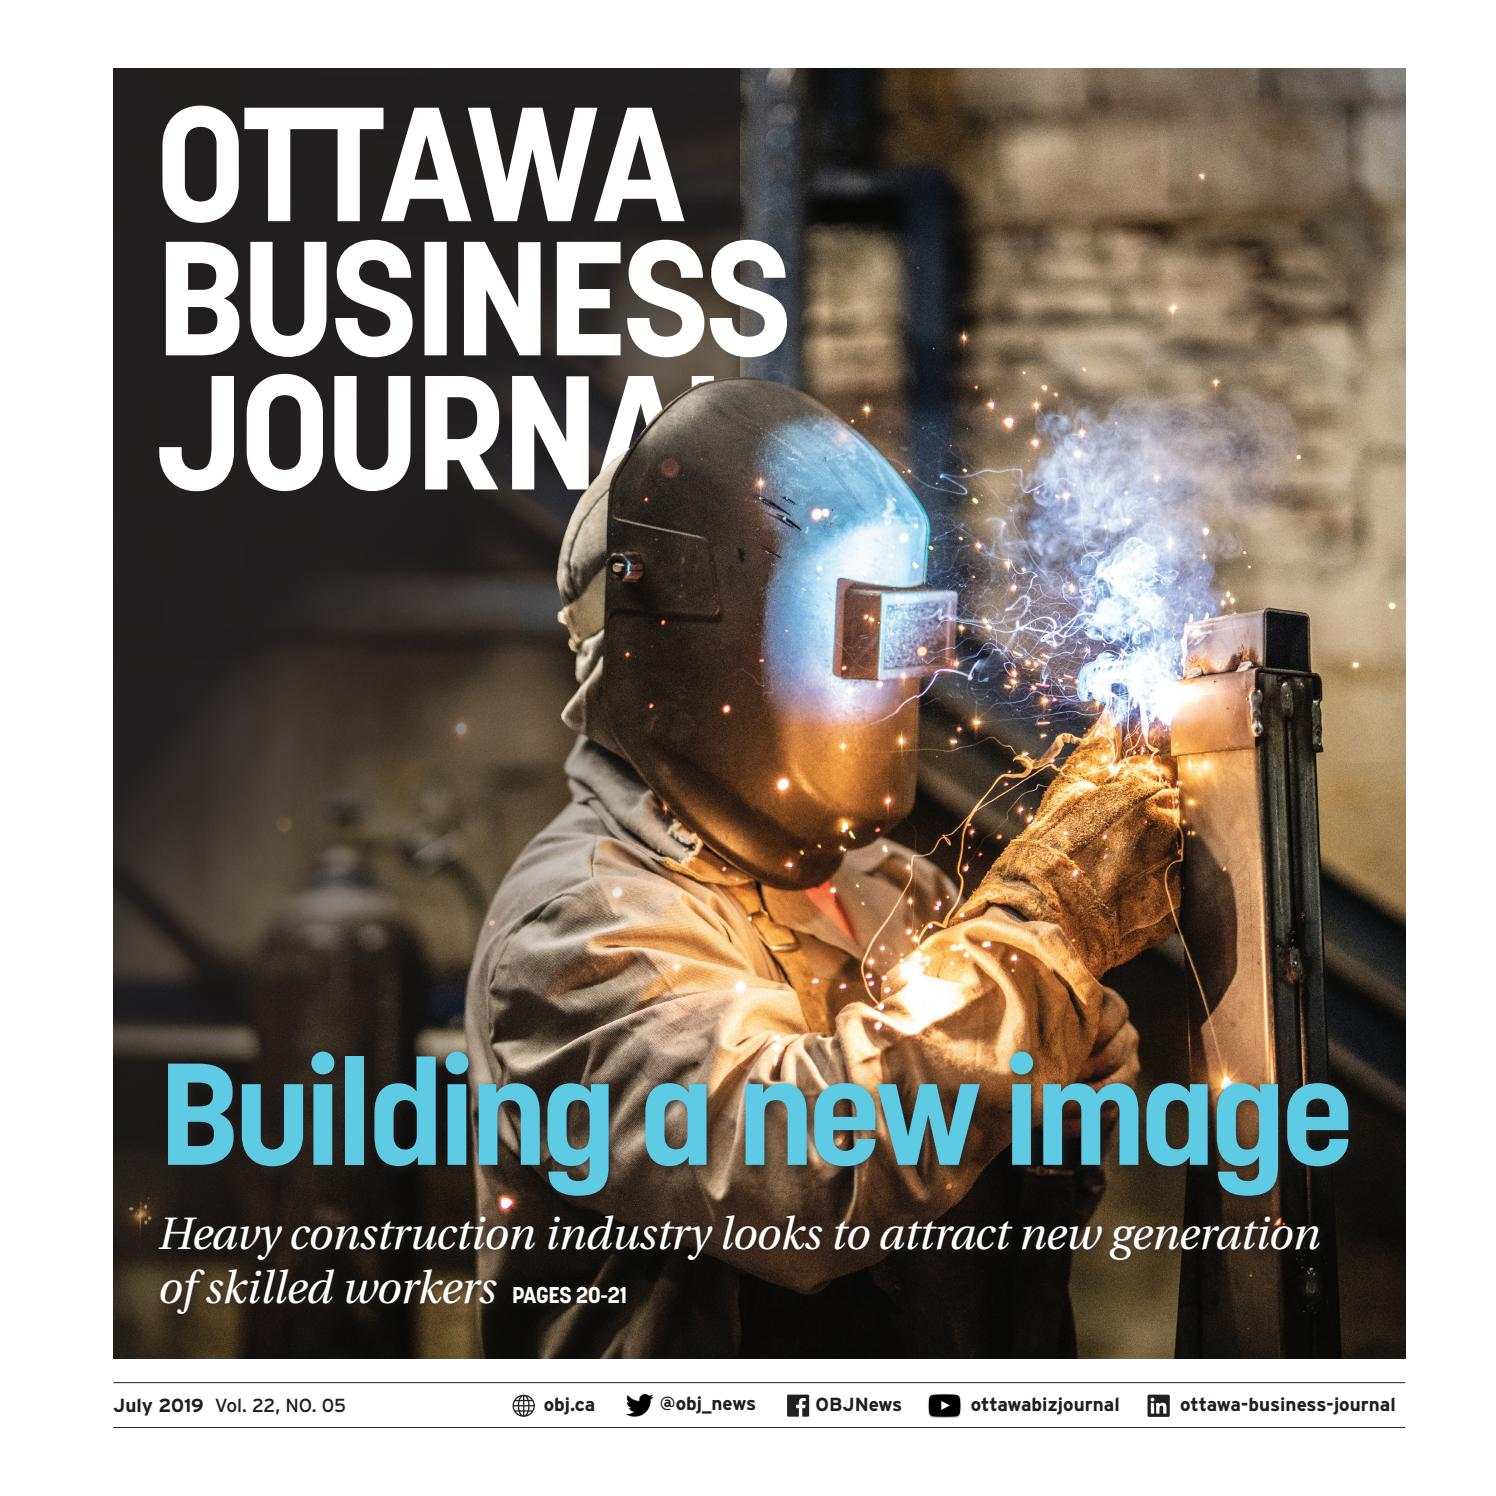 Ottawa Business Journal July 2019 by Great River Media inc